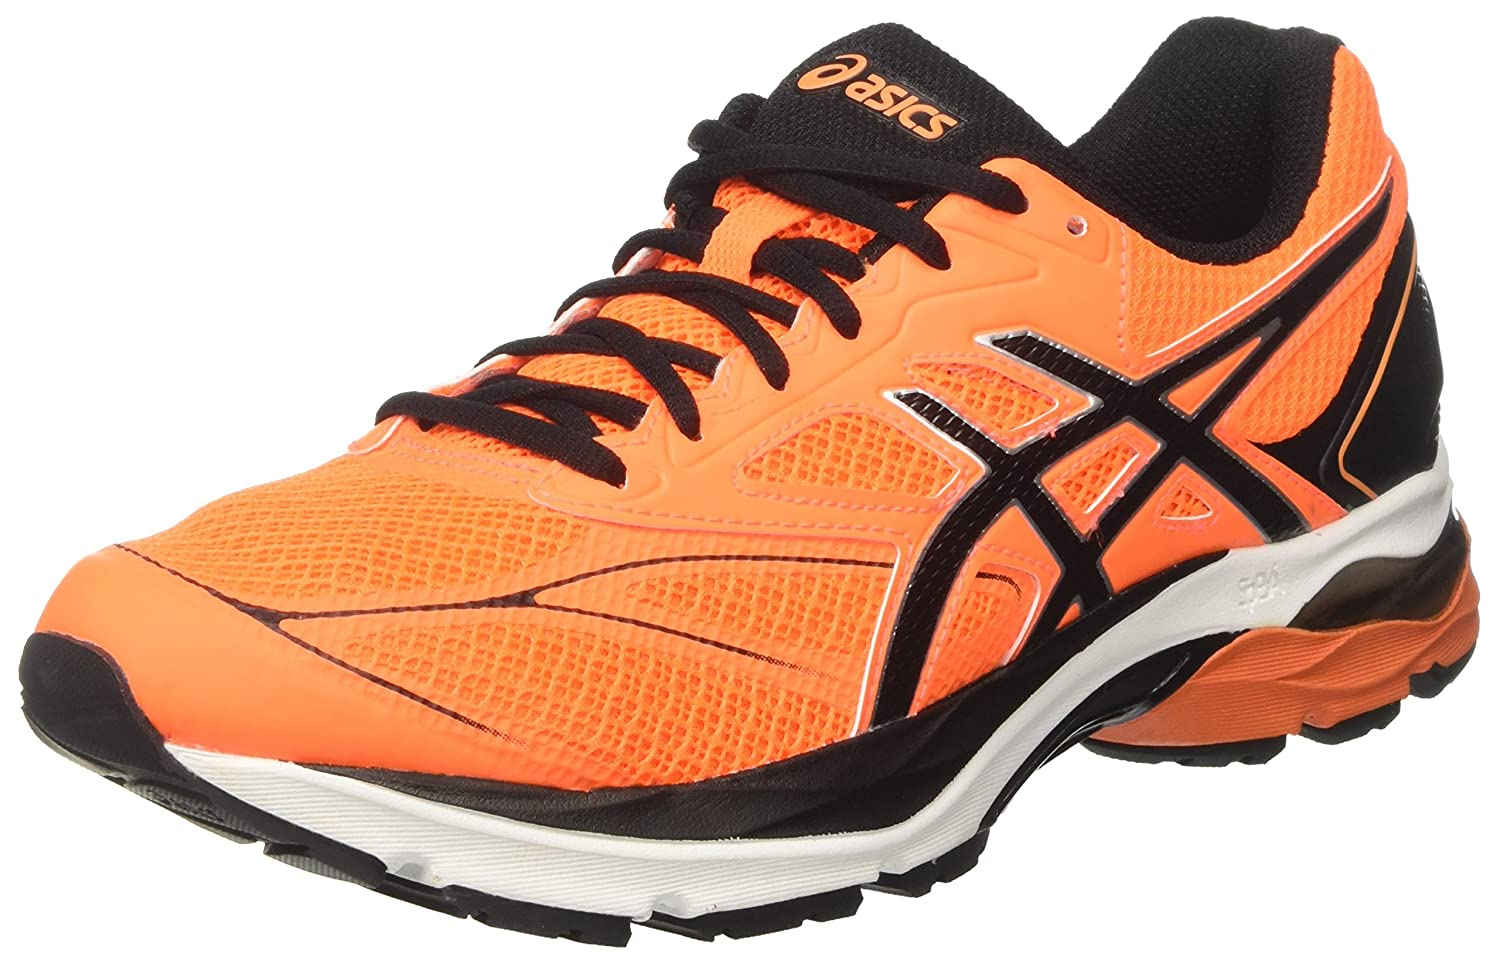 new arrival 80104 4ae59 ASICS Gel-Pulse 8, Chaussures de Running Homme 40 Orange Black White)  EU Orange (Rose Shocking Orange Black White) 40 2d1b9c